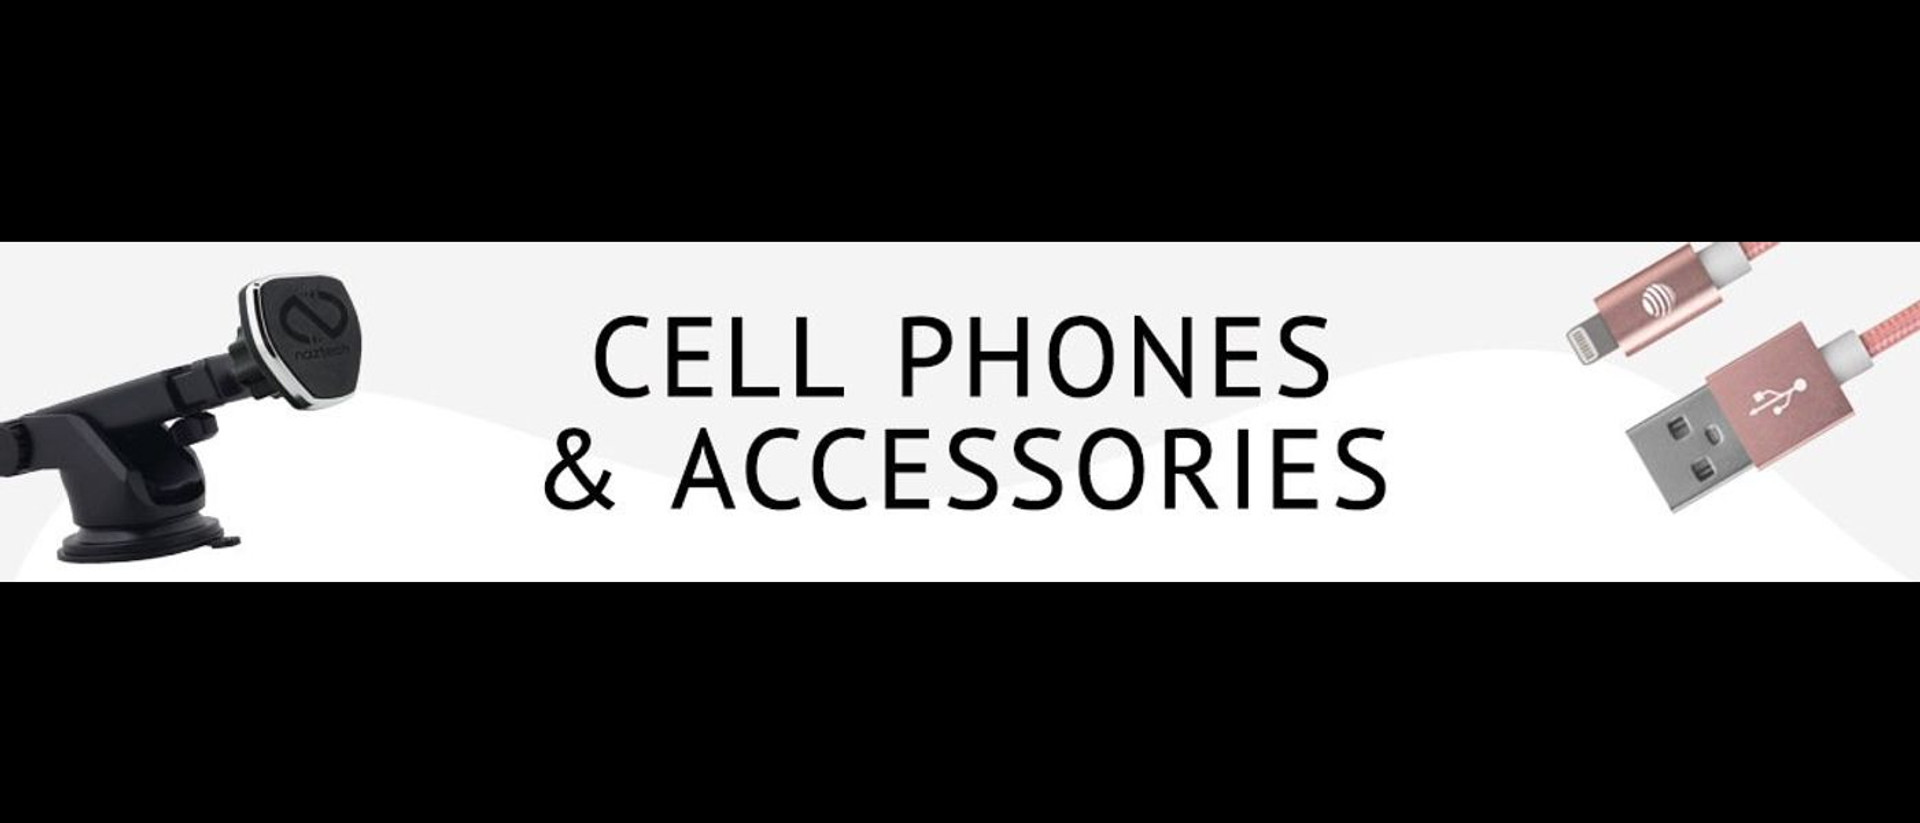 CELL PHONES & ACCESSORIES Increase your mobile offering with prepaid phones, refurbished iPhones, and add-on accessories also.